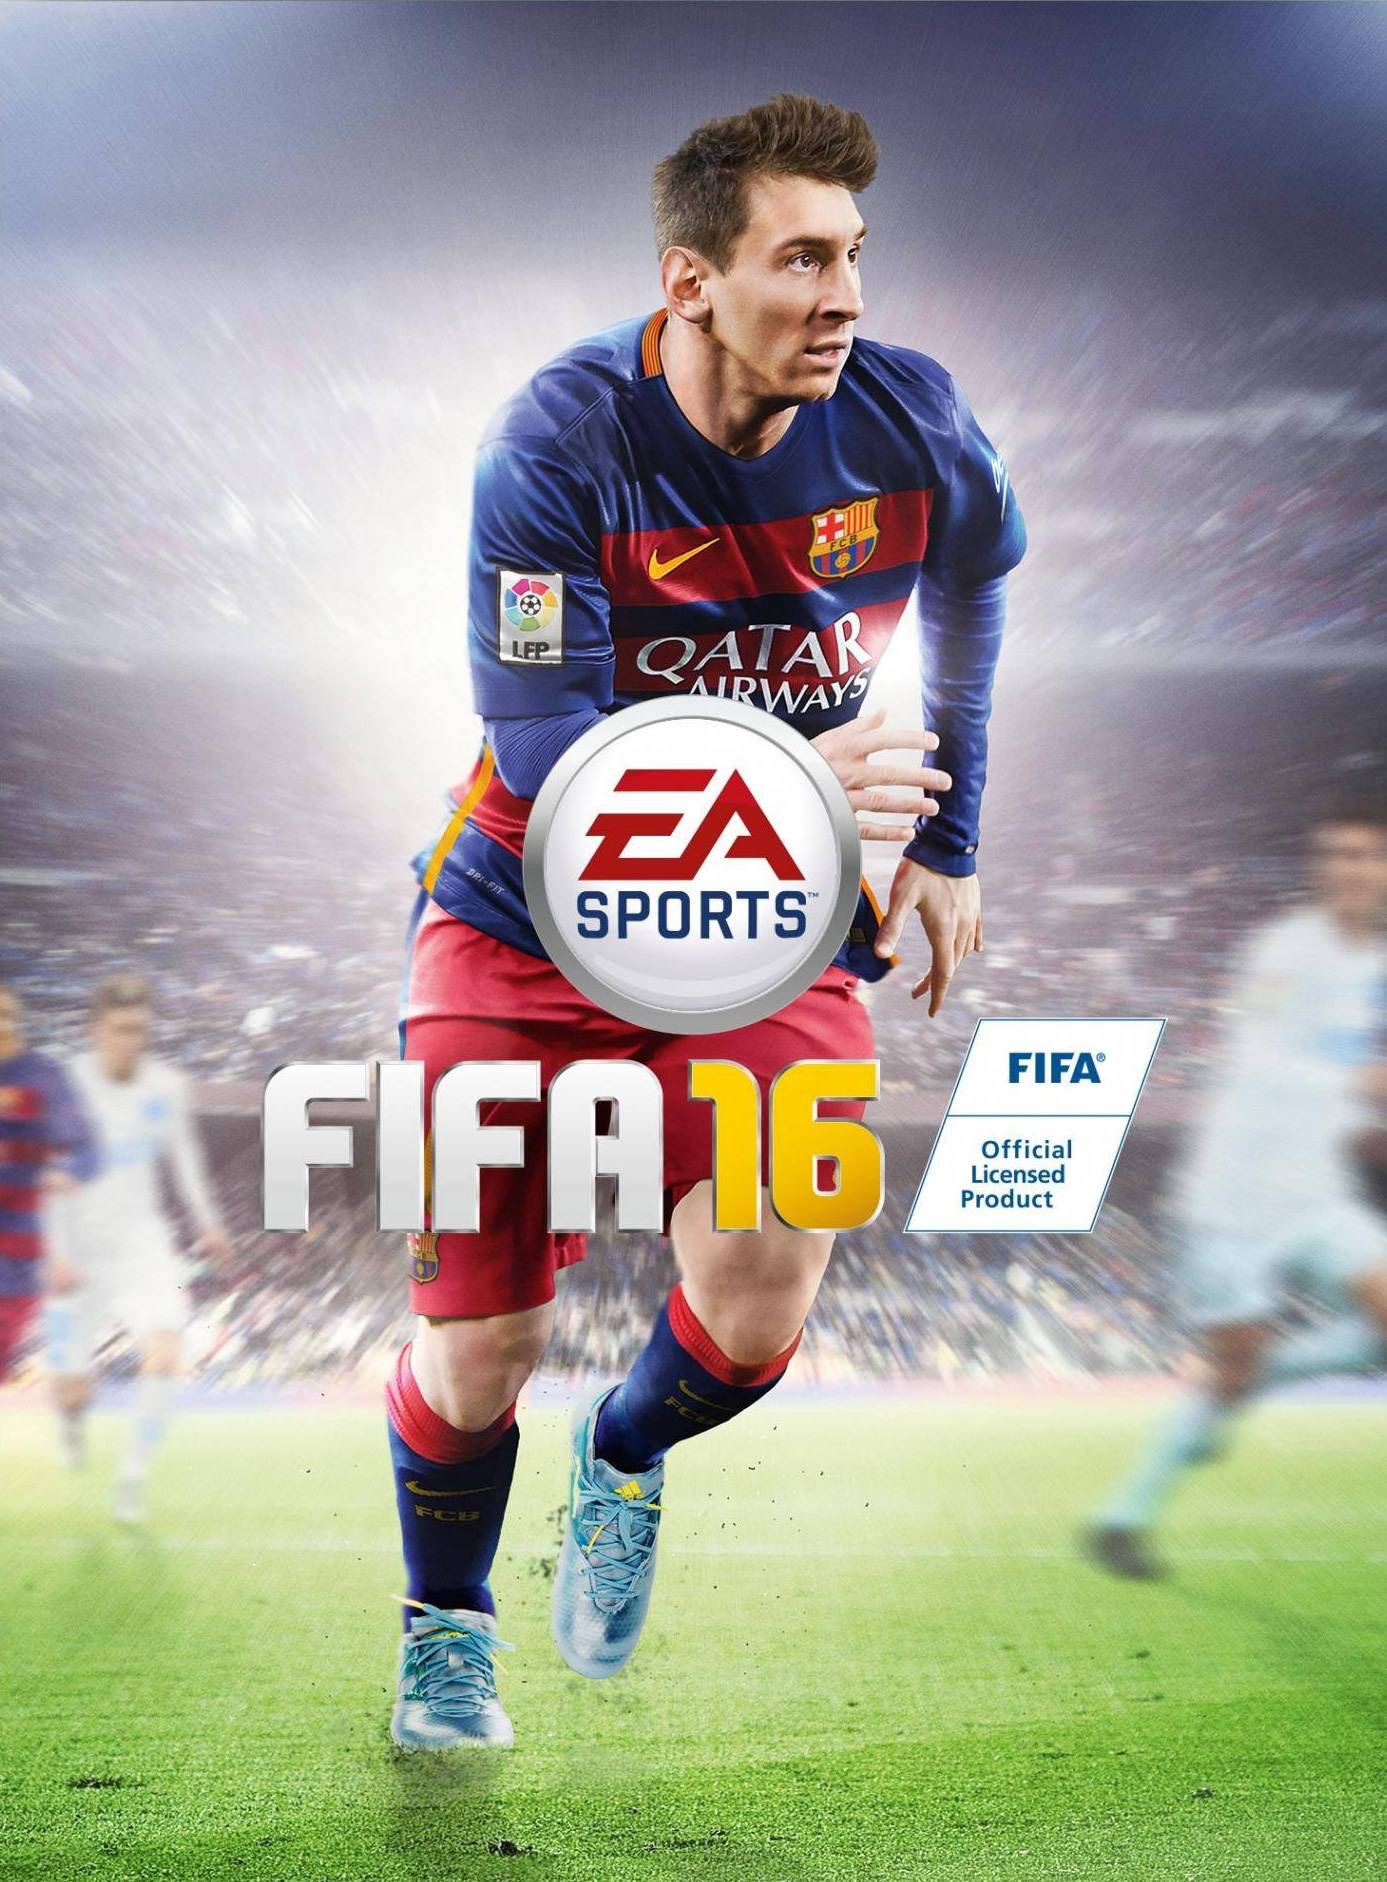 Messi en la portada global del FIFA 16 | Foto EA